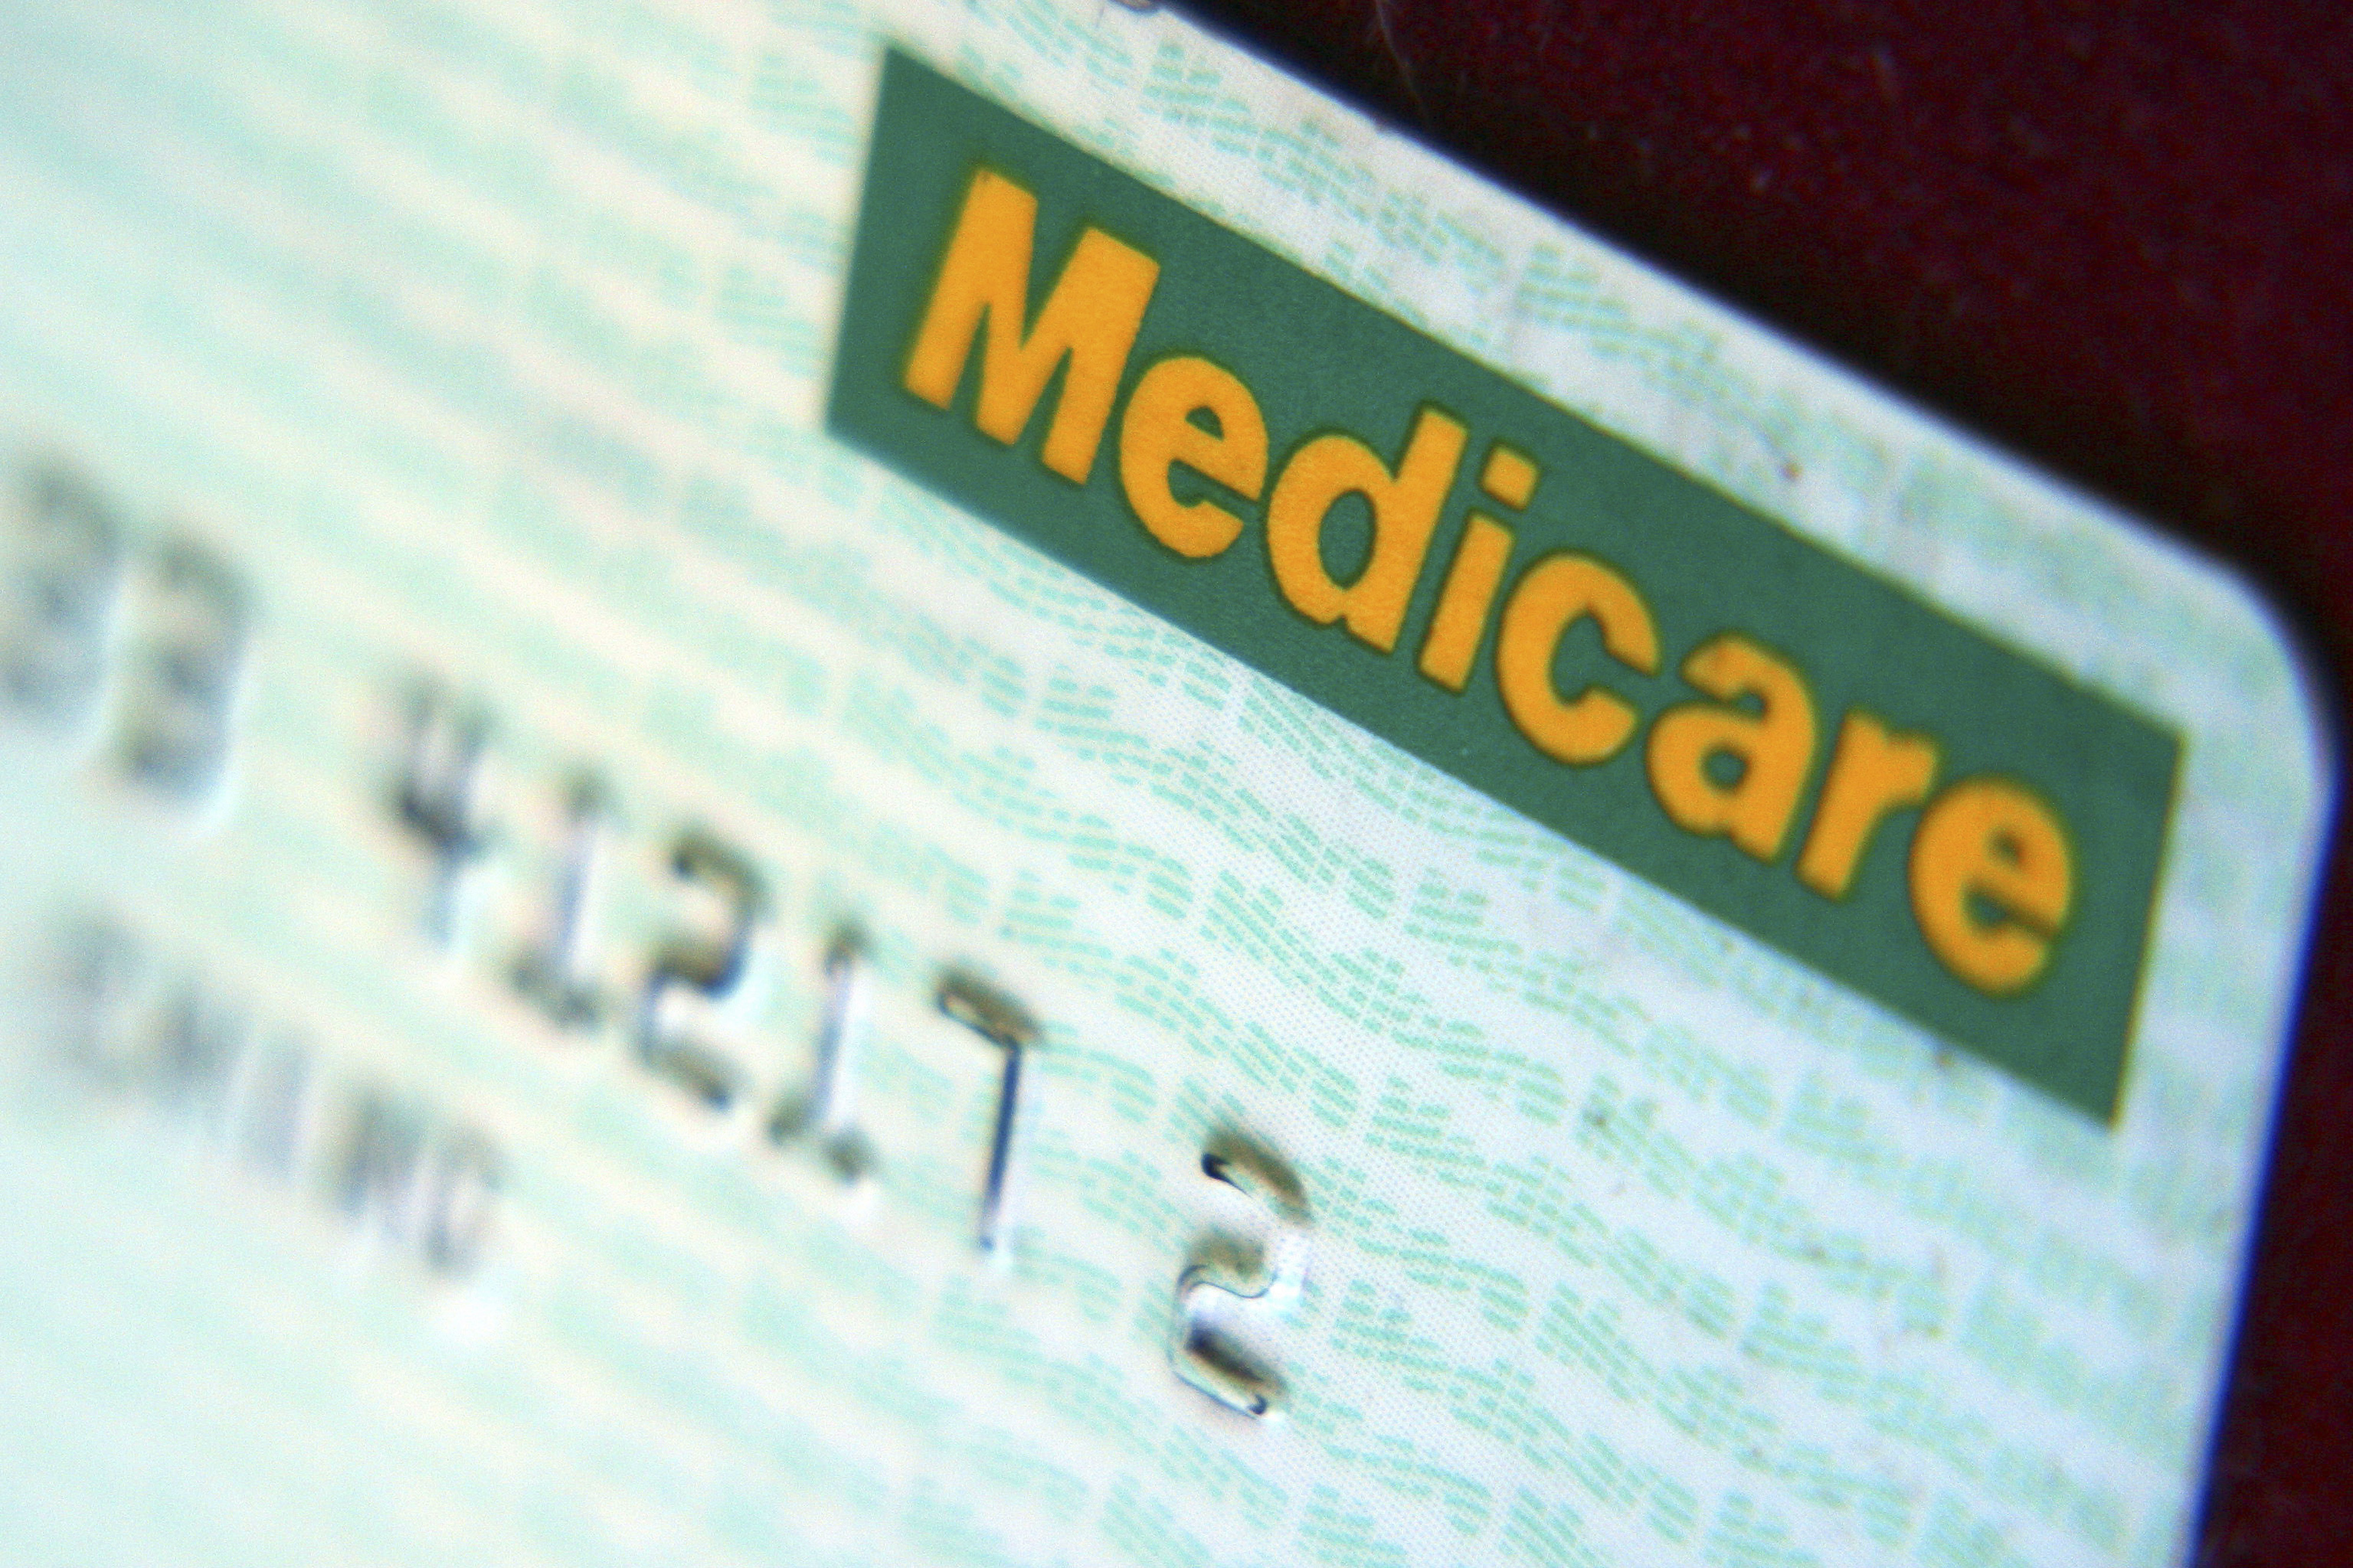 Close up view of a medicare card.